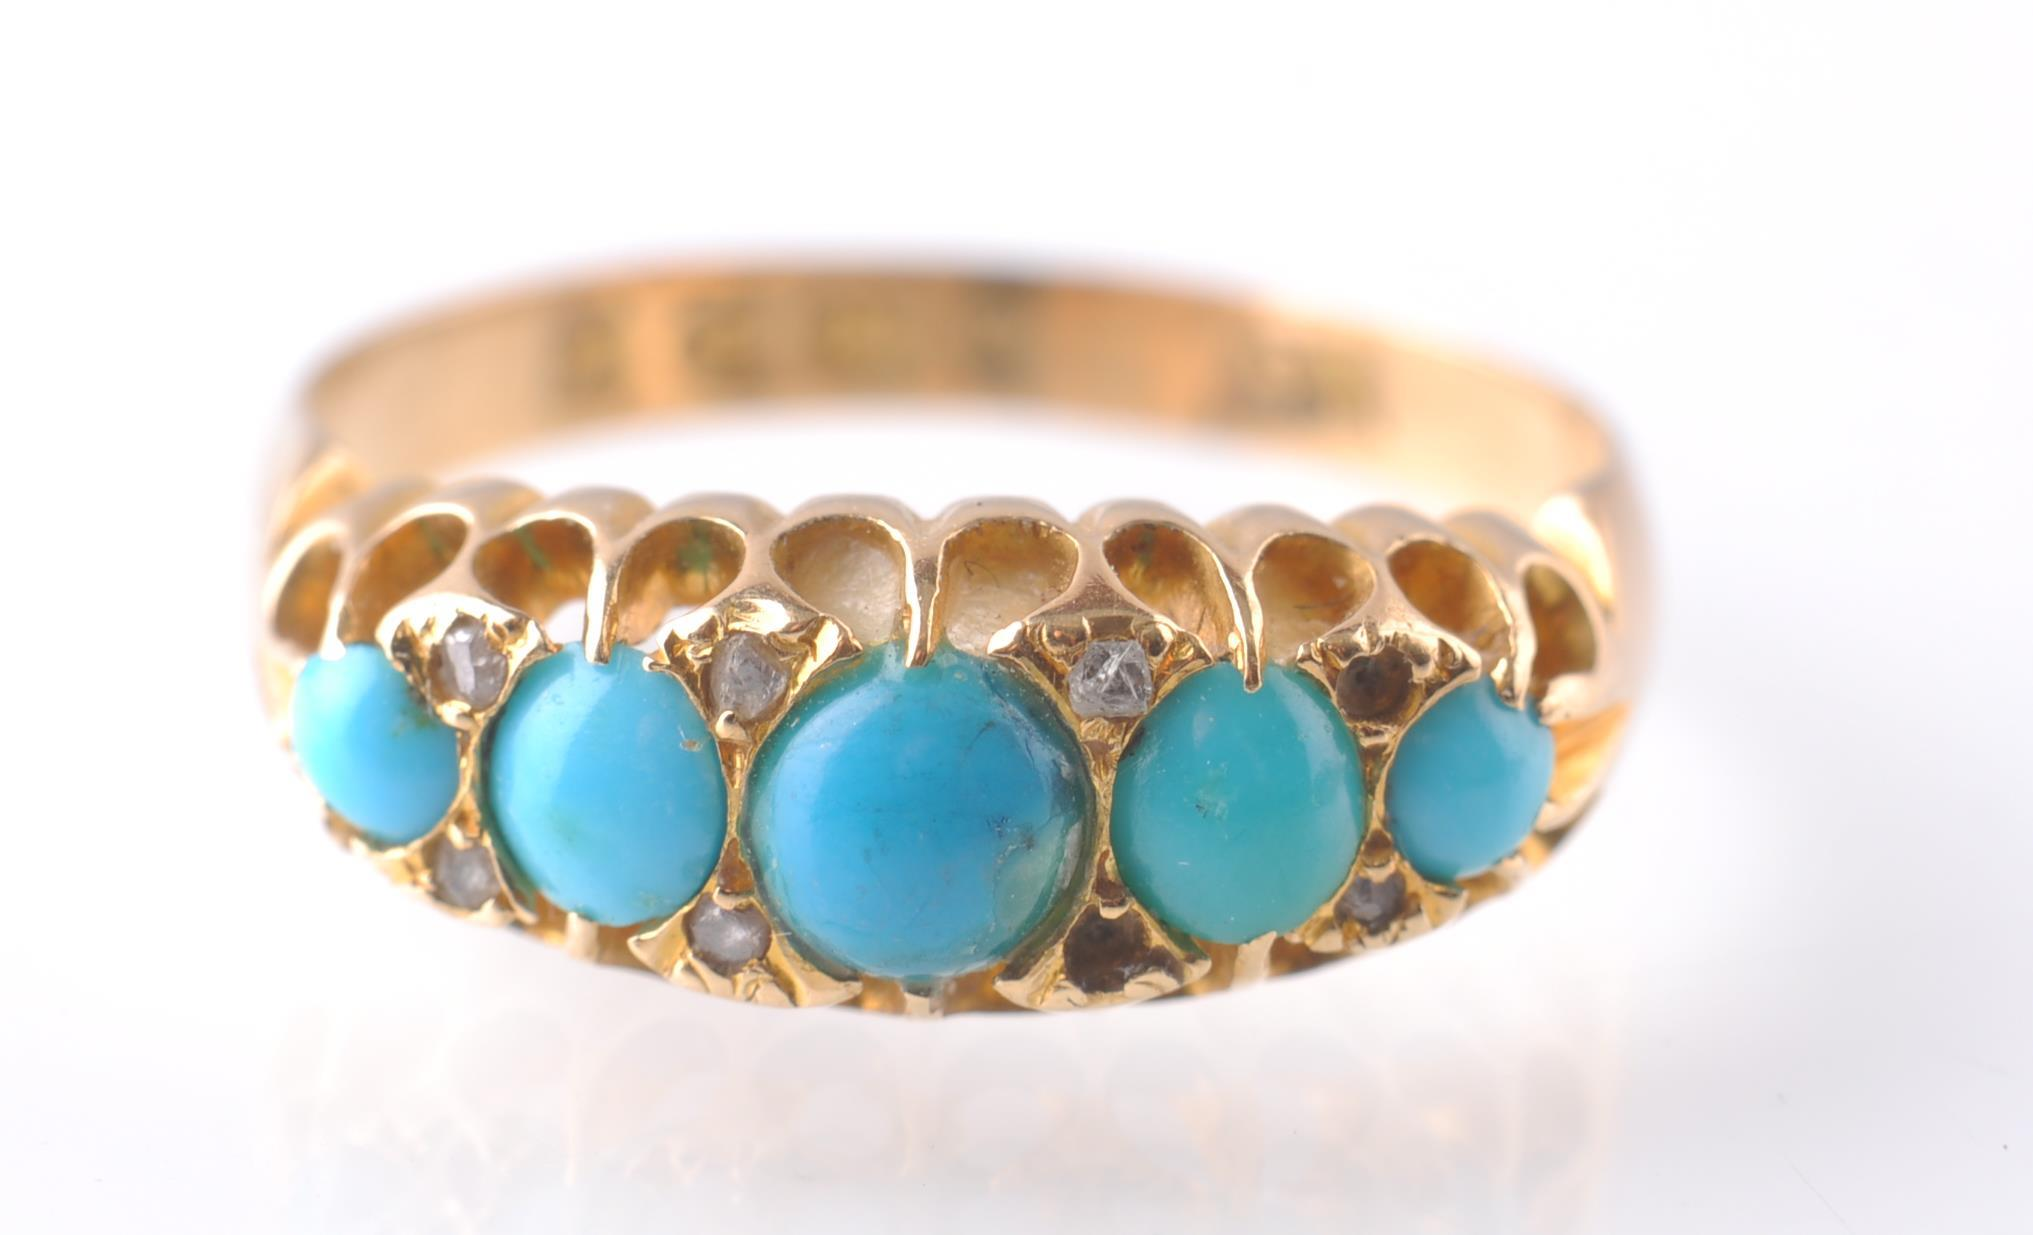 An 18CT GOLD & TURQUOISE GYPSY RING - 1915